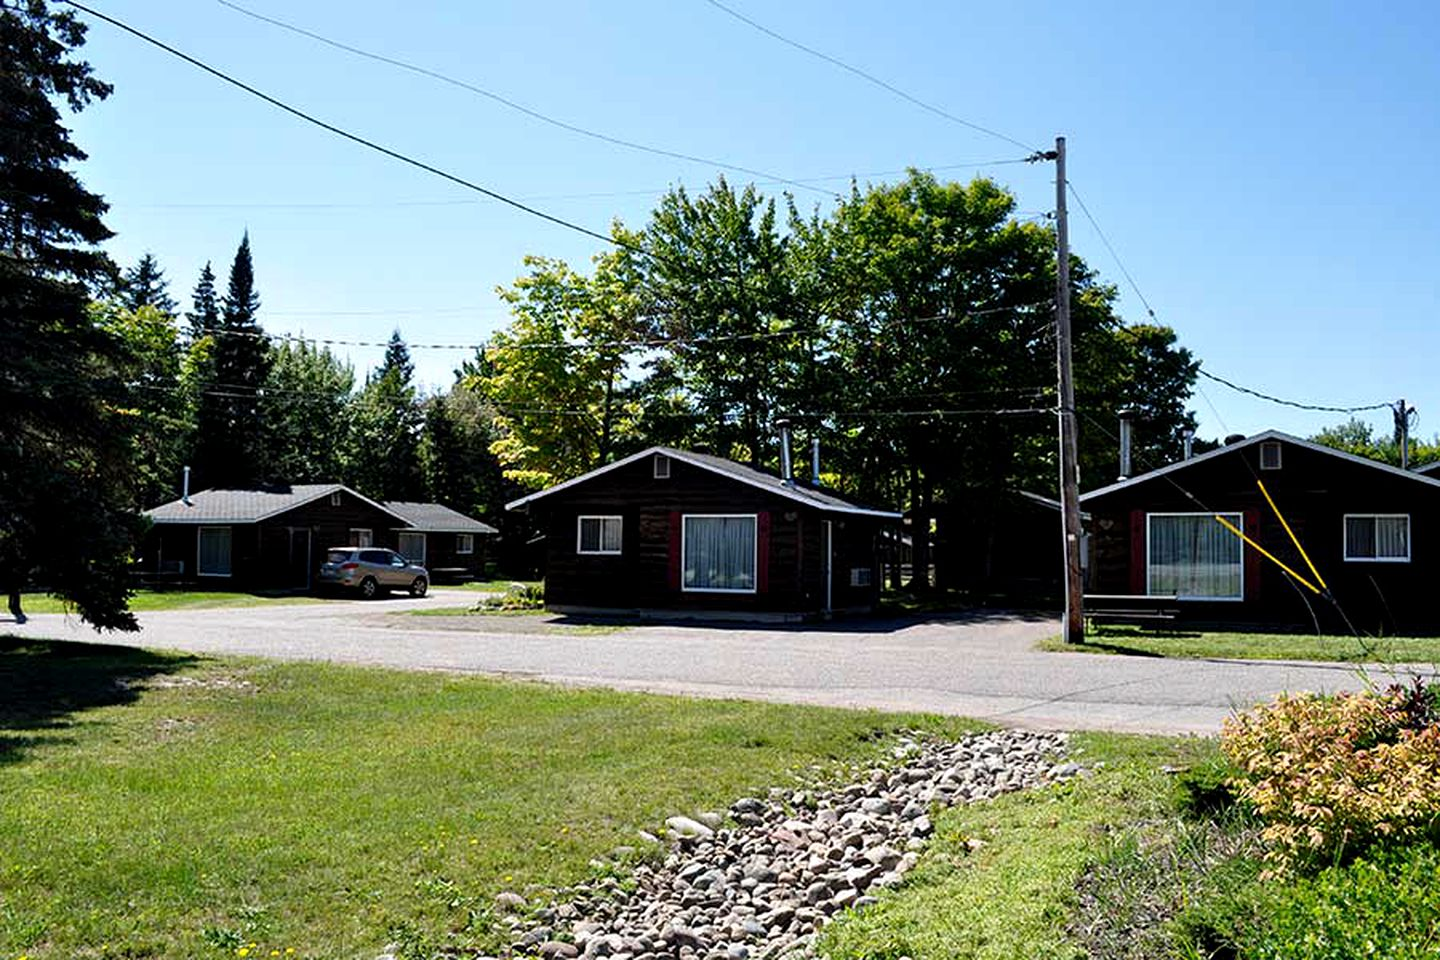 Cottages (Sault Ste Marie, Ontario, Canada)